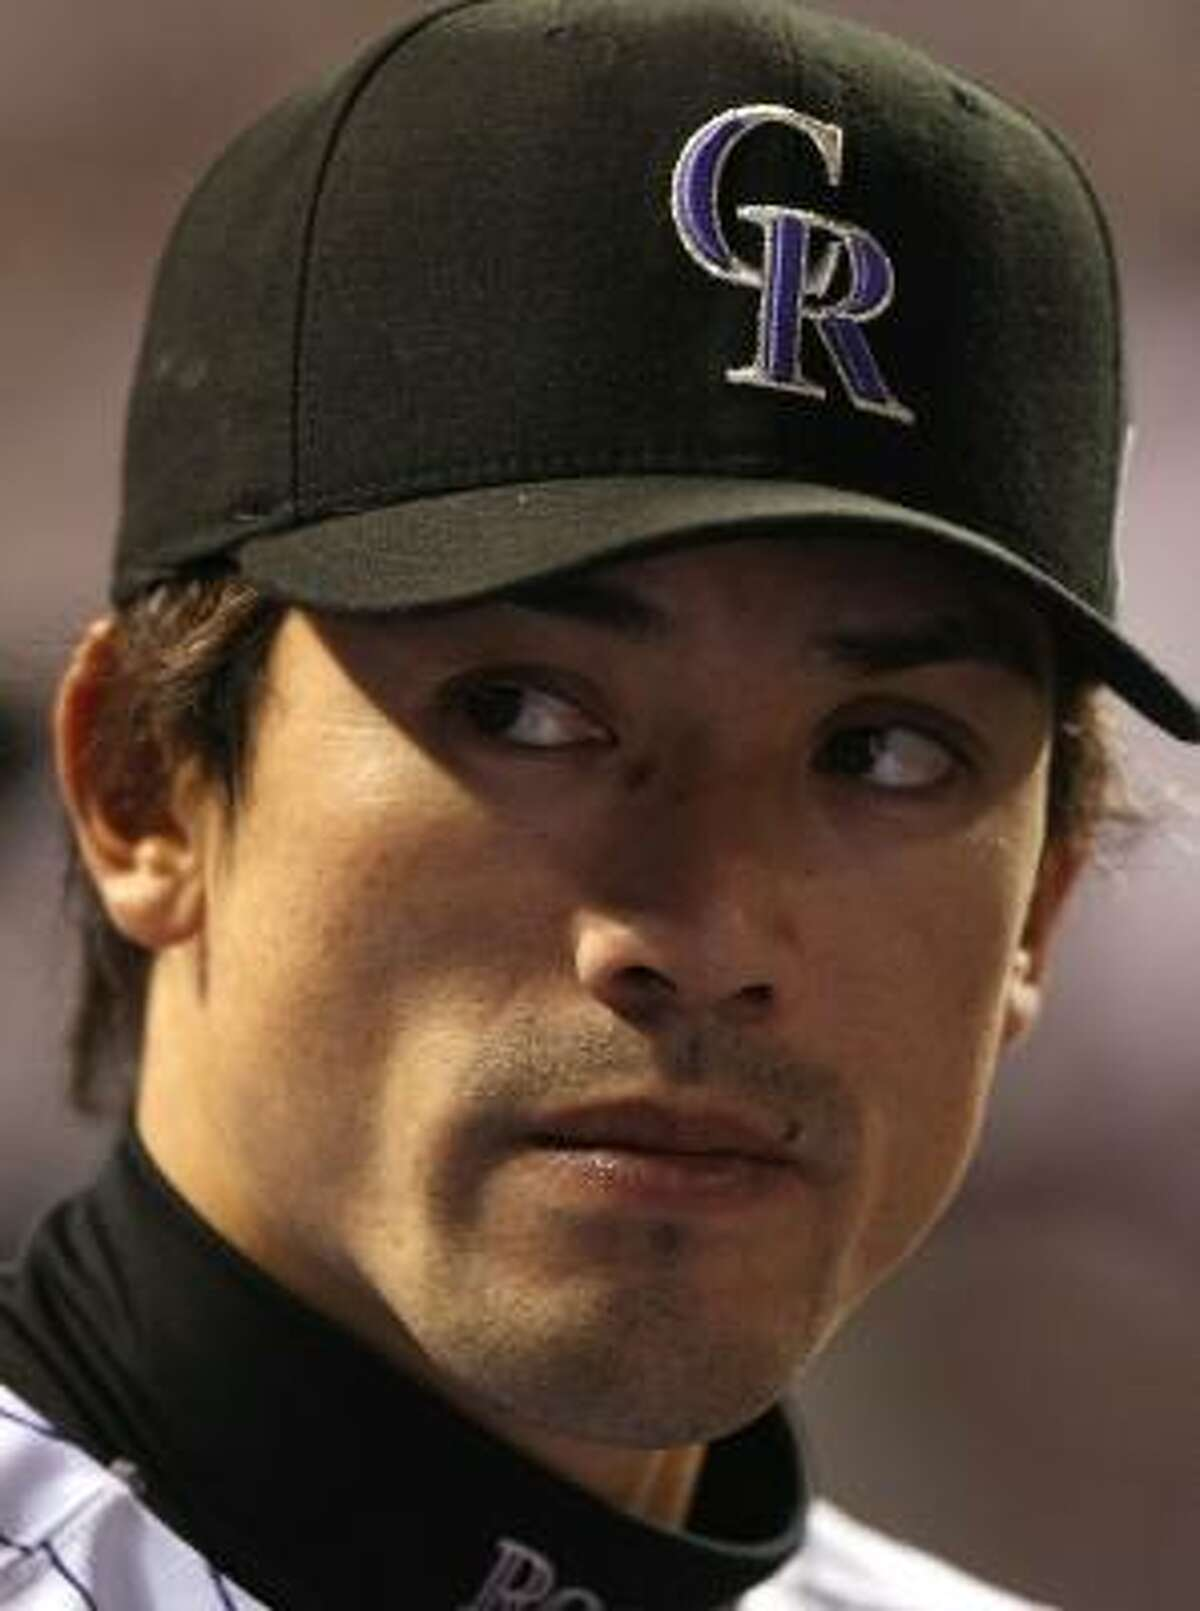 Matsui, 32, has a .272 career batting average over four injury-plagued seasons in the majors since leaving the Japanese League, where he starred from 1995-2003. He spent his first 2½ seasons in the majors with the New York Mets before being traded to the Colorado Rockies on June 9, 2006.